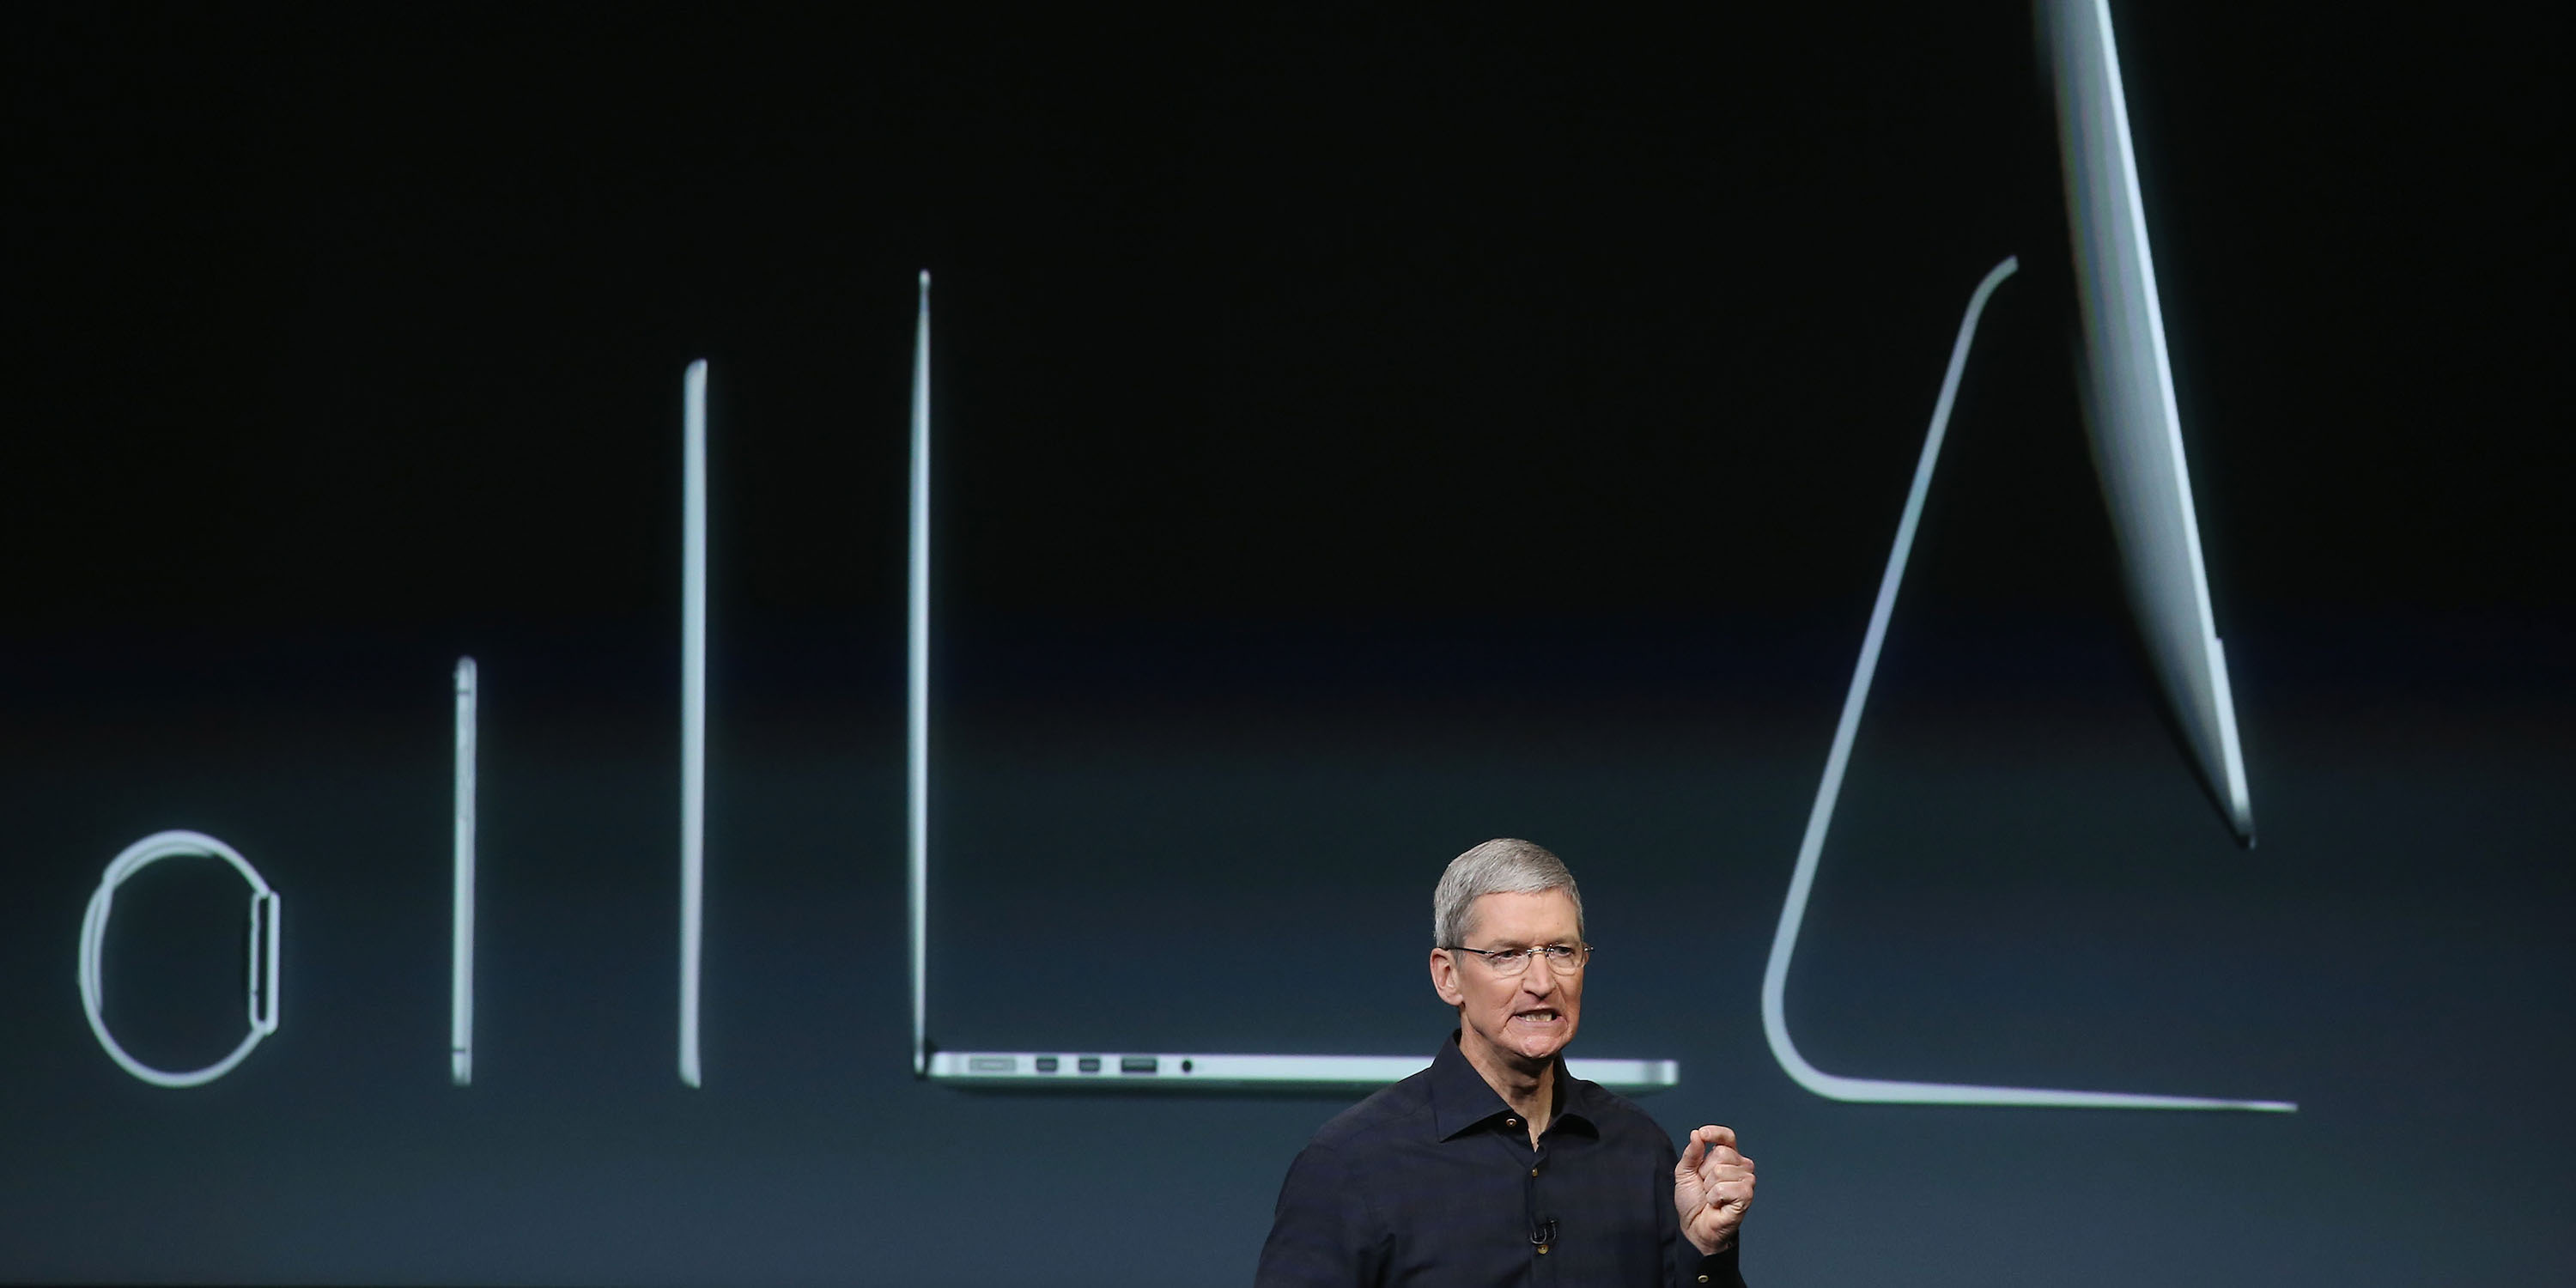 CUPERTINO, CA - OCTOBER 16: Apple CEO Tim Cook speaks during an event introducing new iPads at Apple's headquarters October 16, 2014 in Cupertino, California. (Photo by Justin Sullivan/Getty Images)